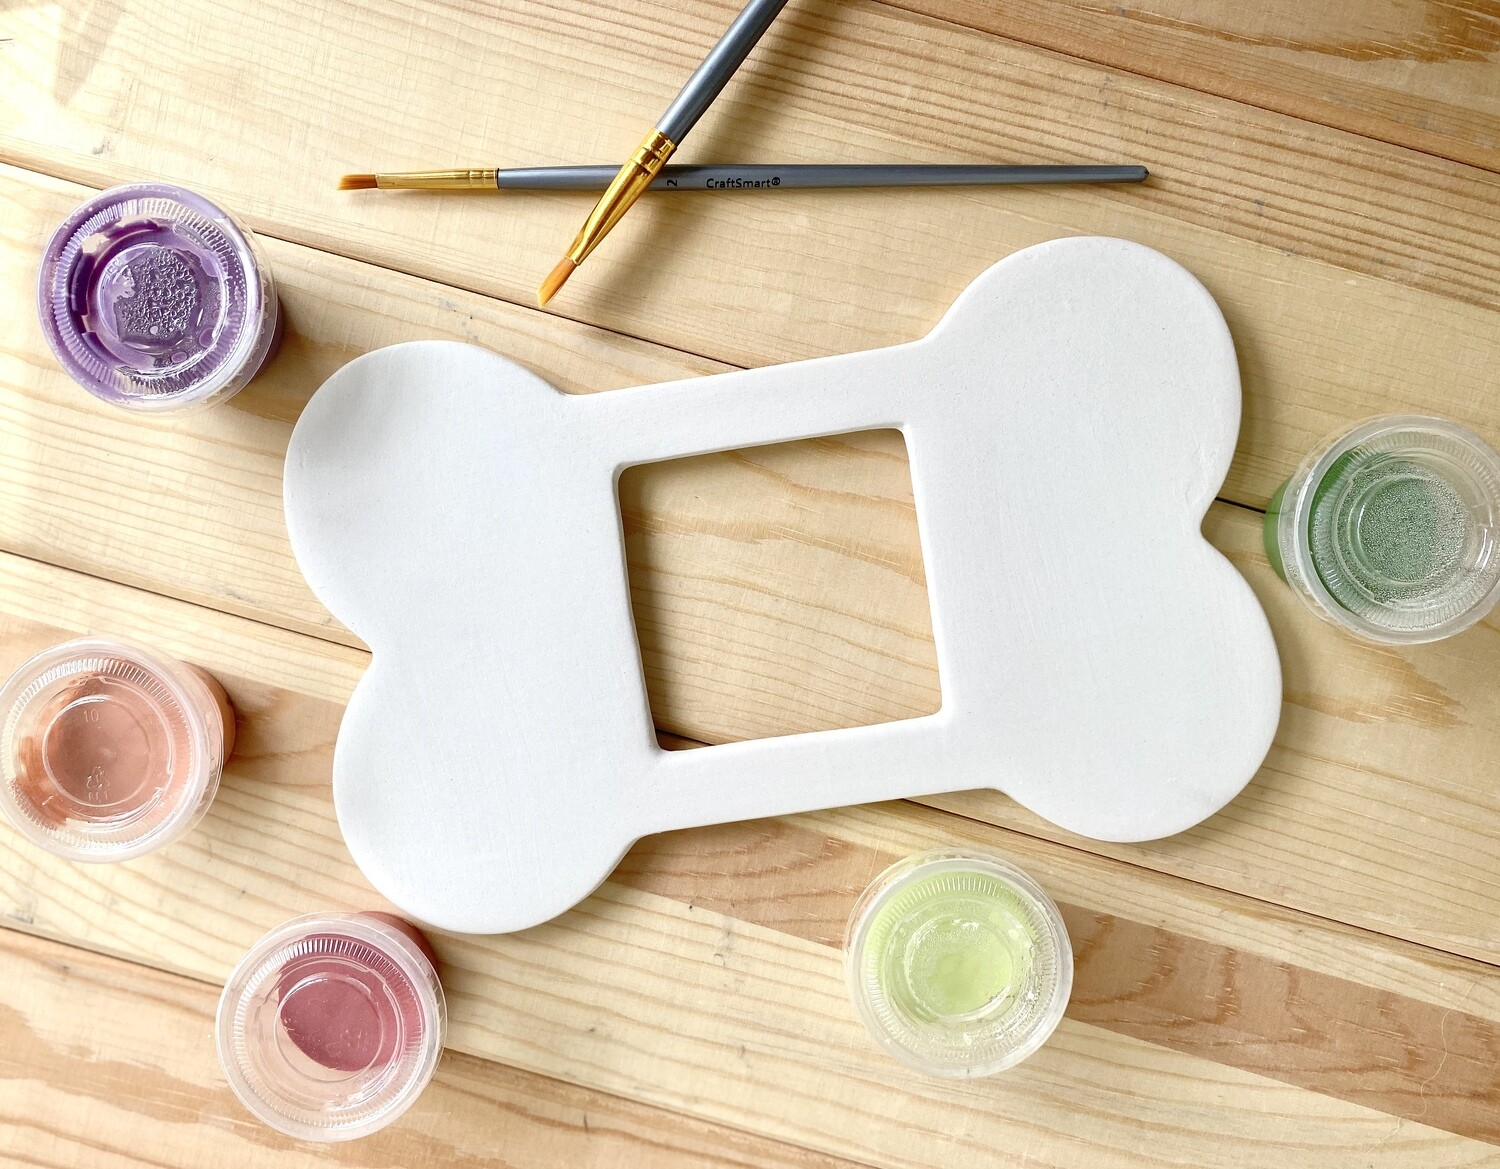 Take Home Dog Bone Picture Frame with Glazes- Pick Up Curbside